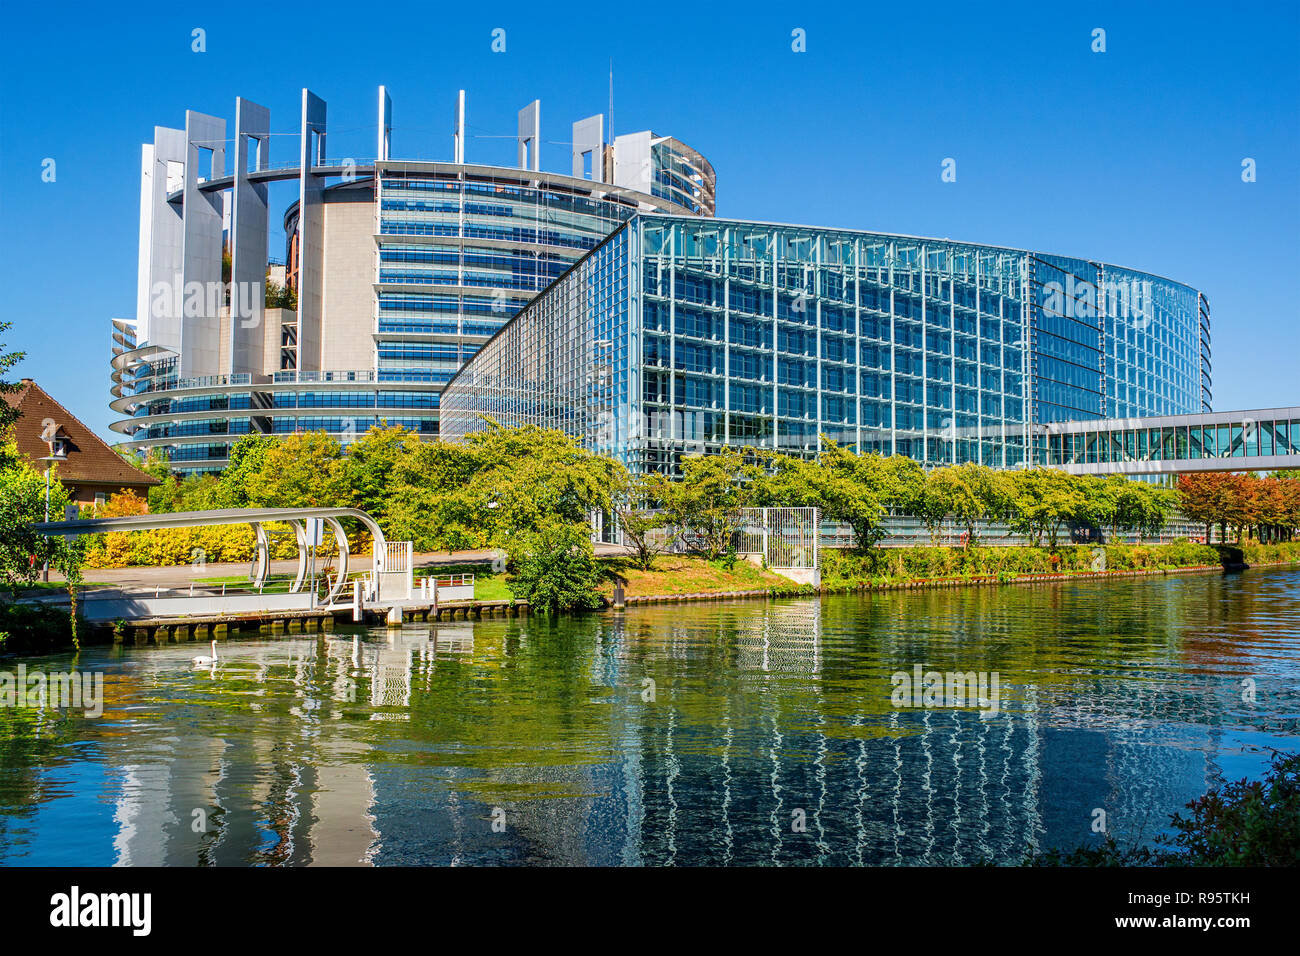 Building of the European Parliament in Strasbourg (France) Stock Photo